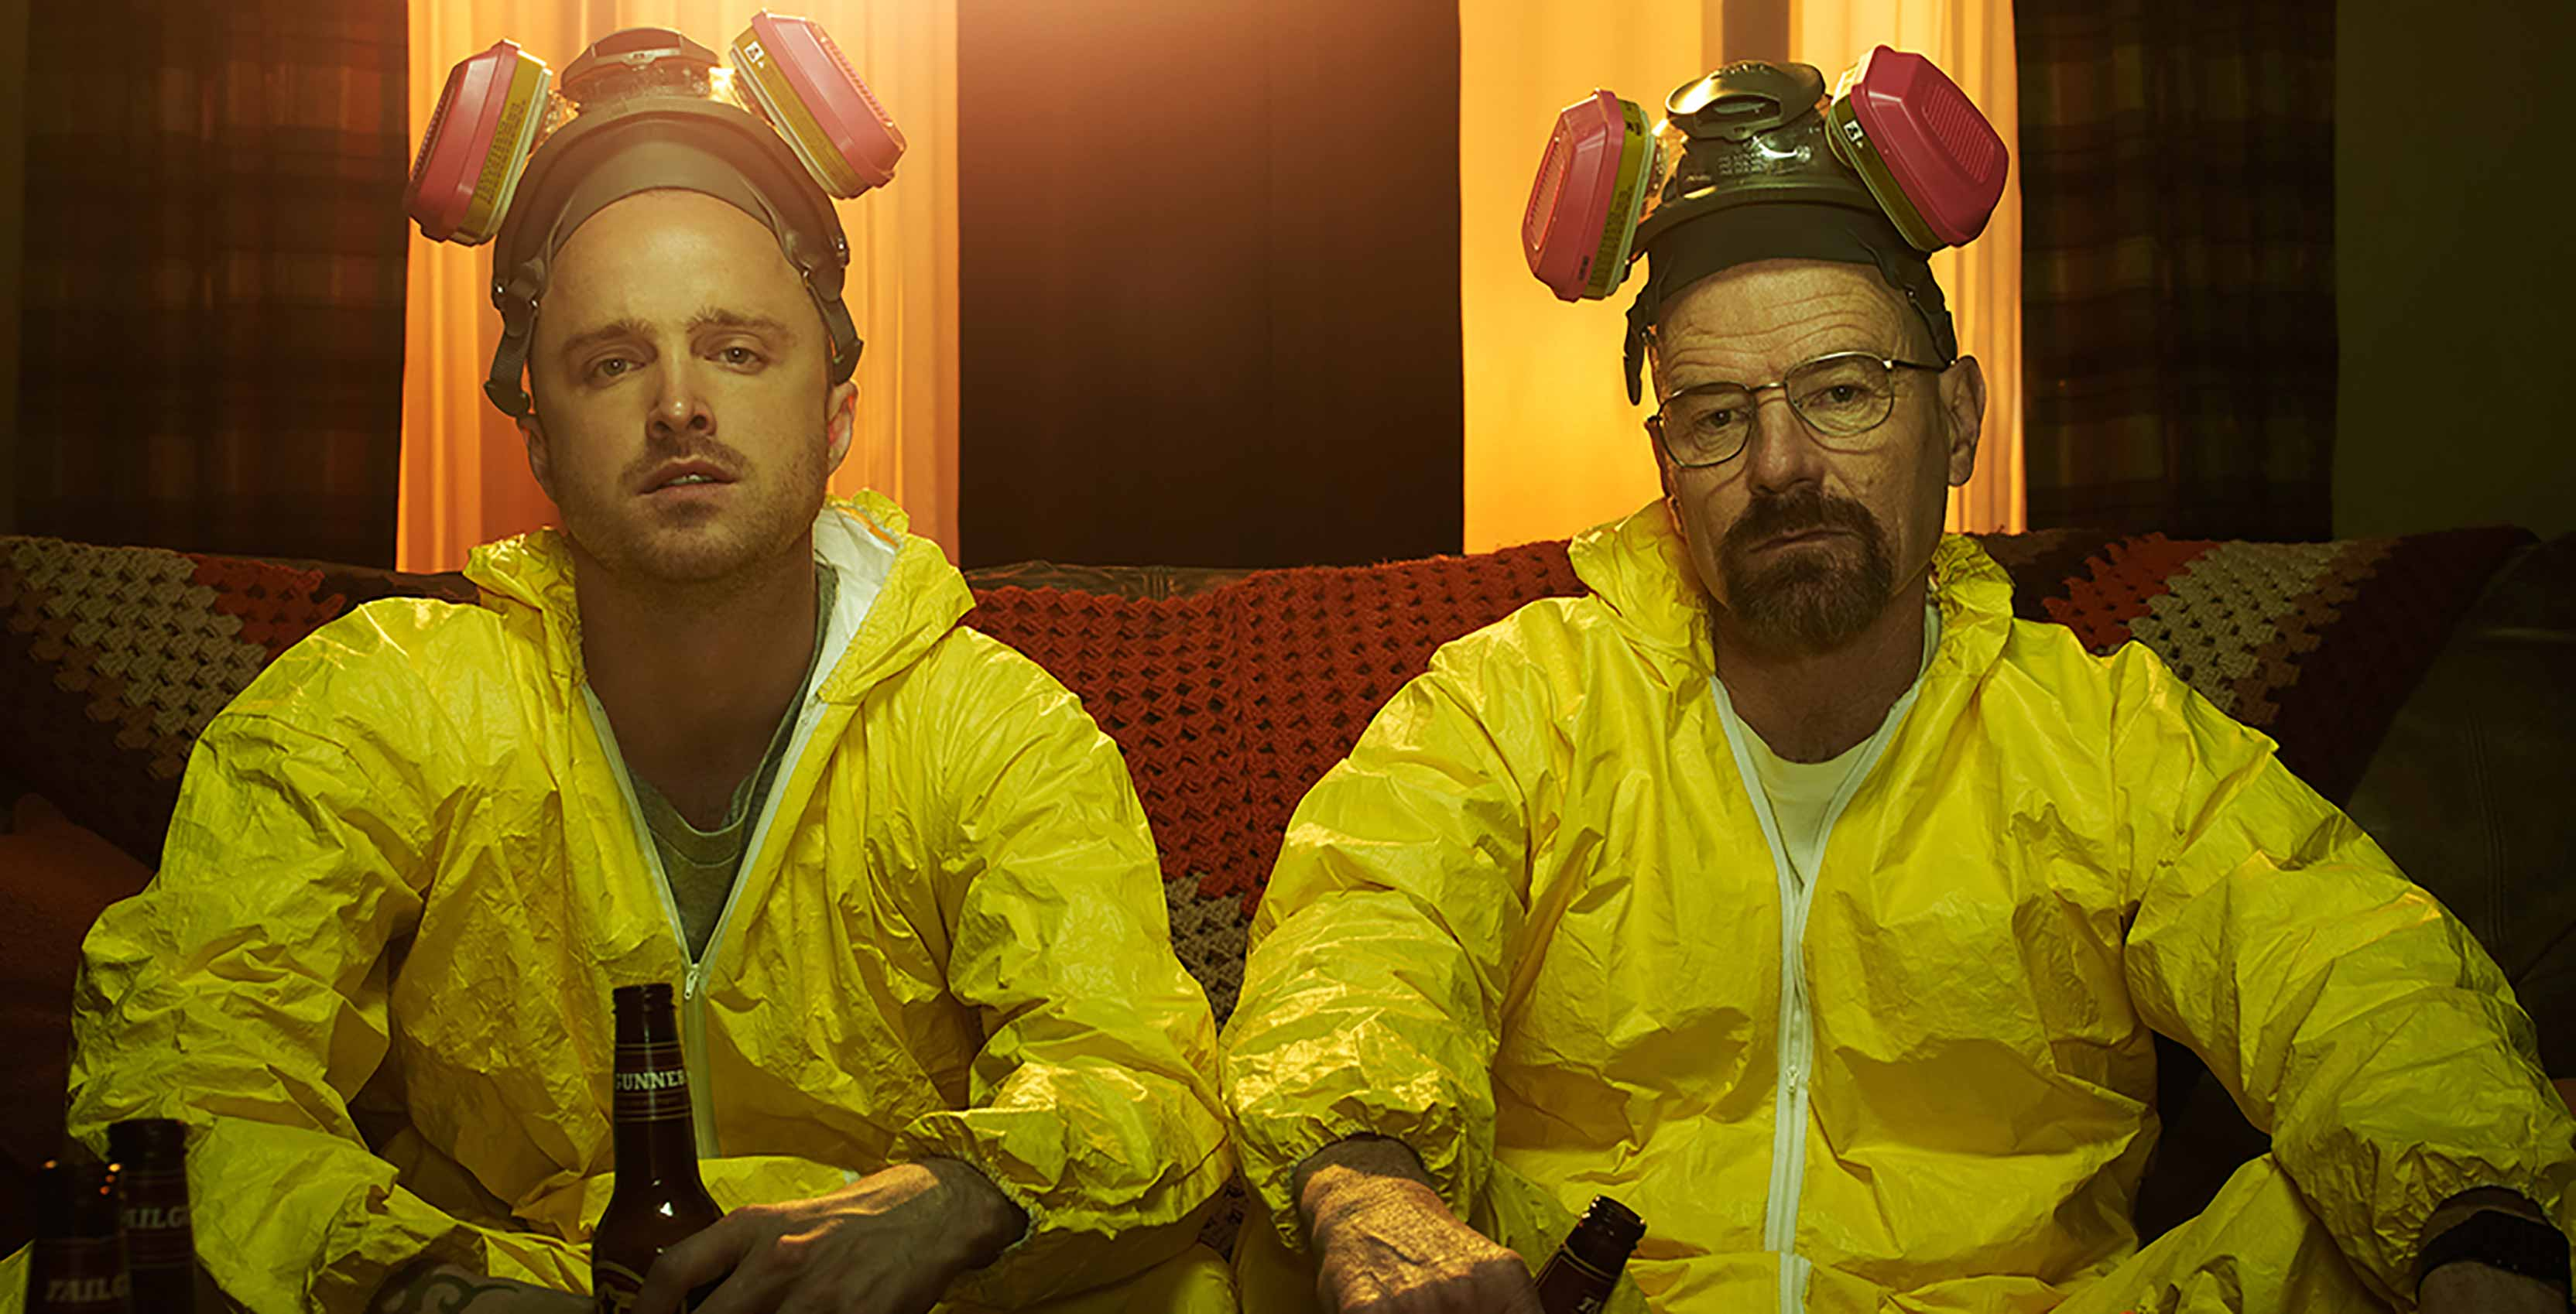 Breaking Bad Walt and Jesse in chem suits